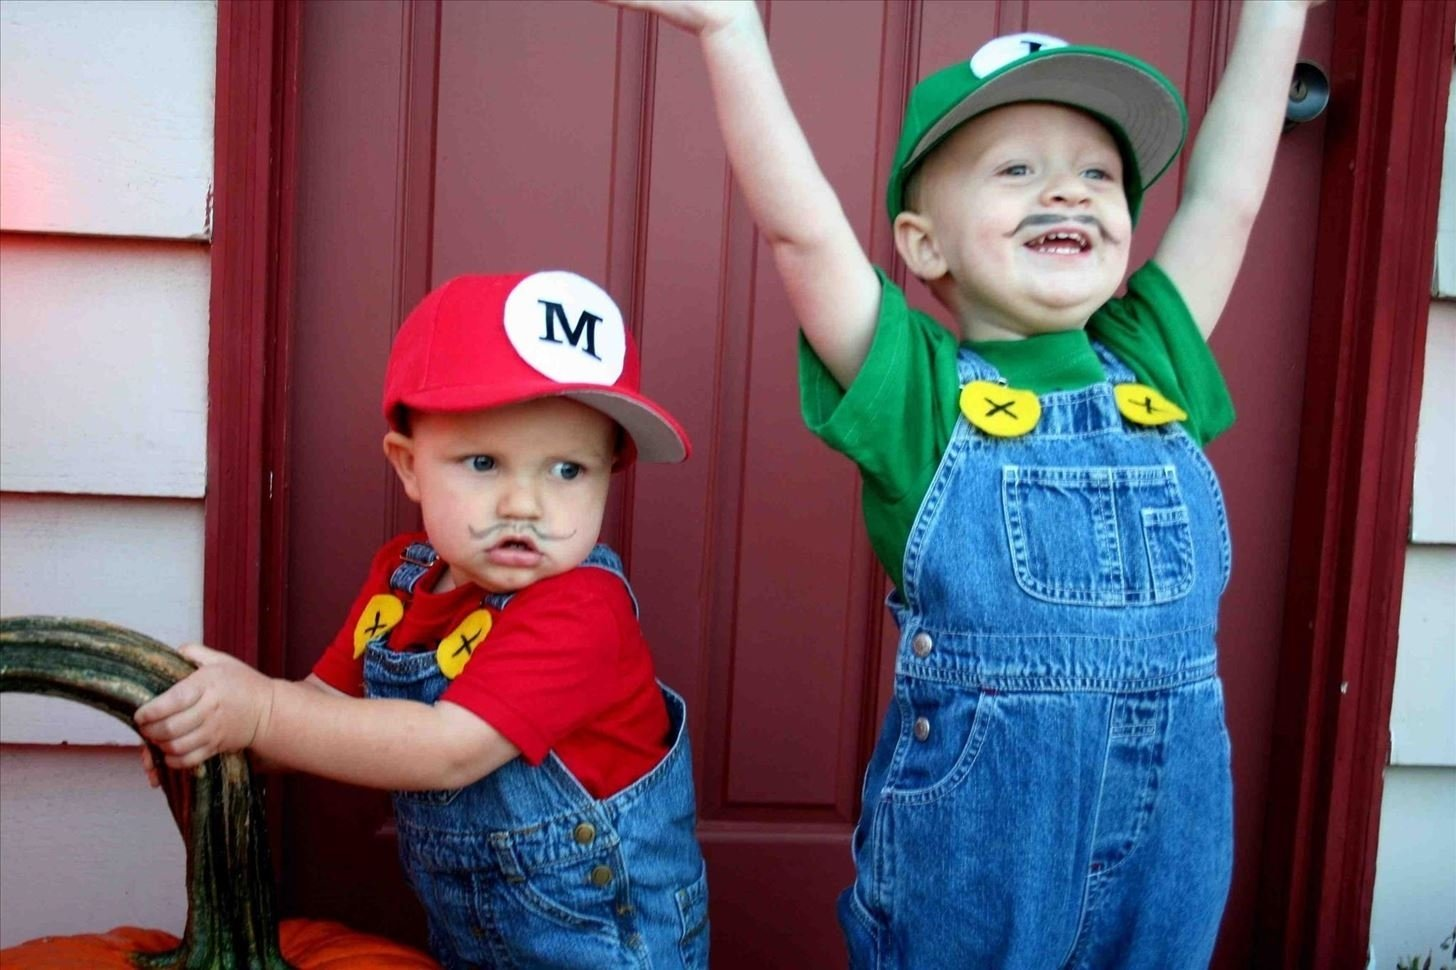 10 Fashionable Halloween Costume Ideas For Kids 10 cheap easy awesome diy halloween costumes for kids homemade 10